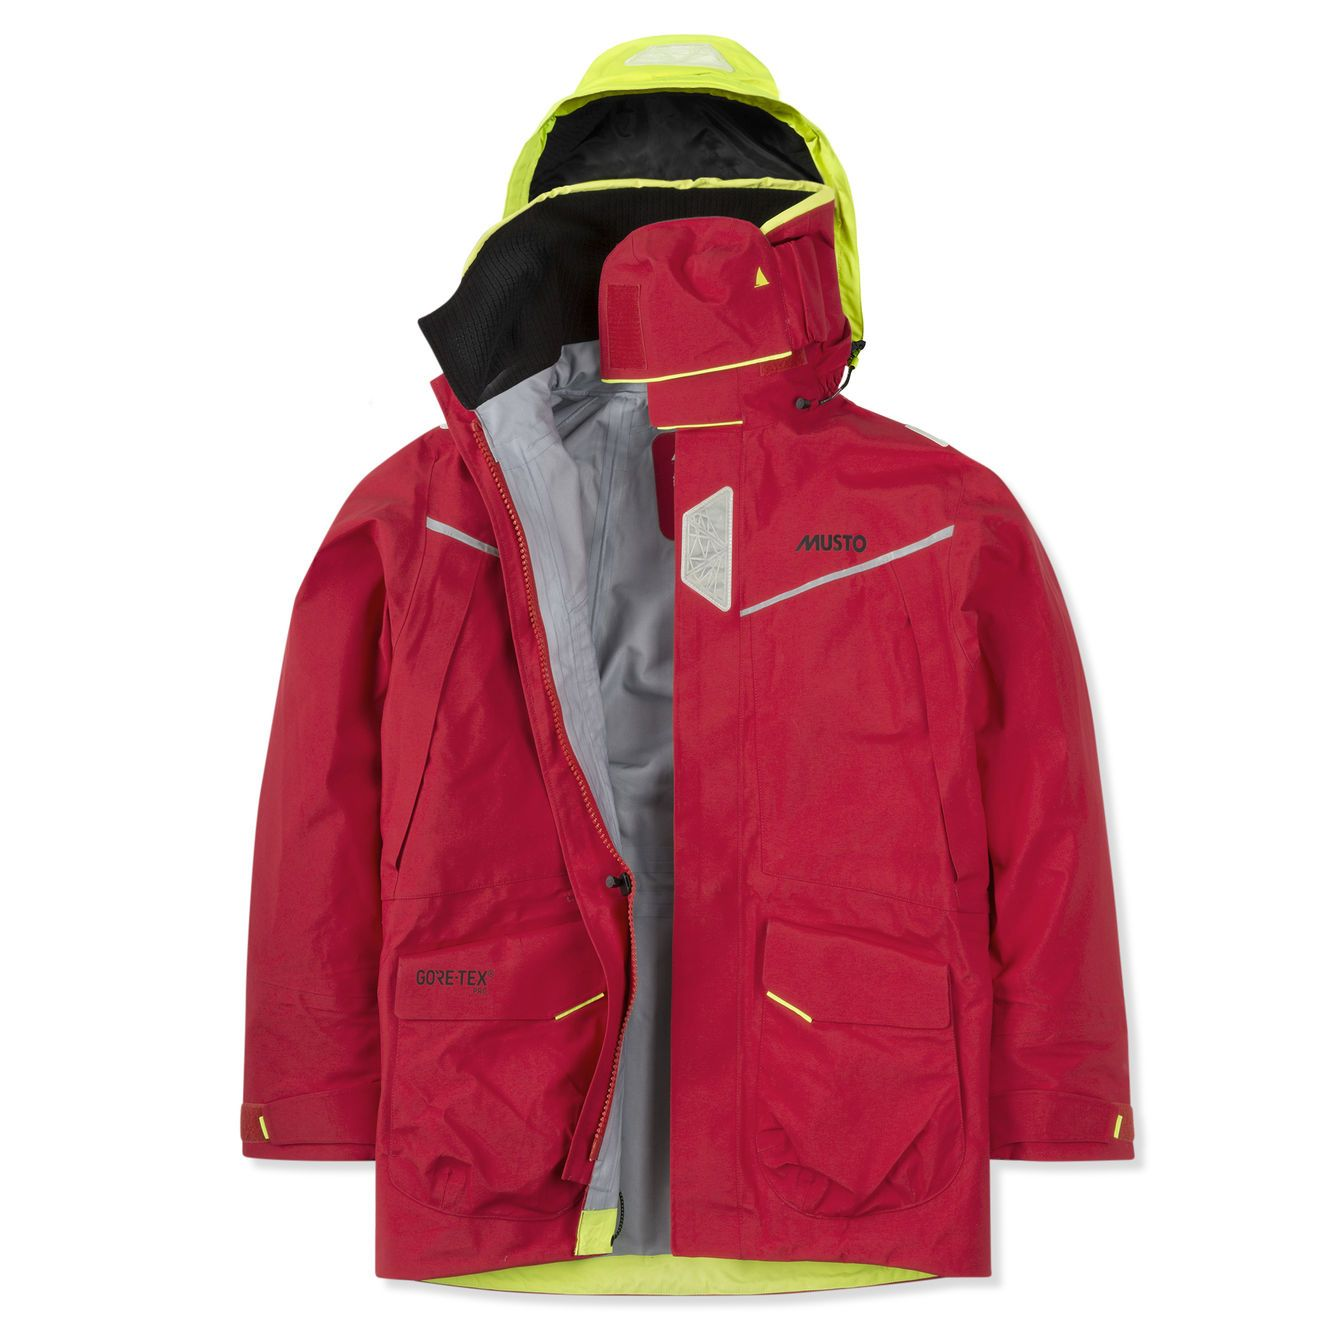 MUSTO - MPX GORE-TEX® PRO OFFSHORE JACKET